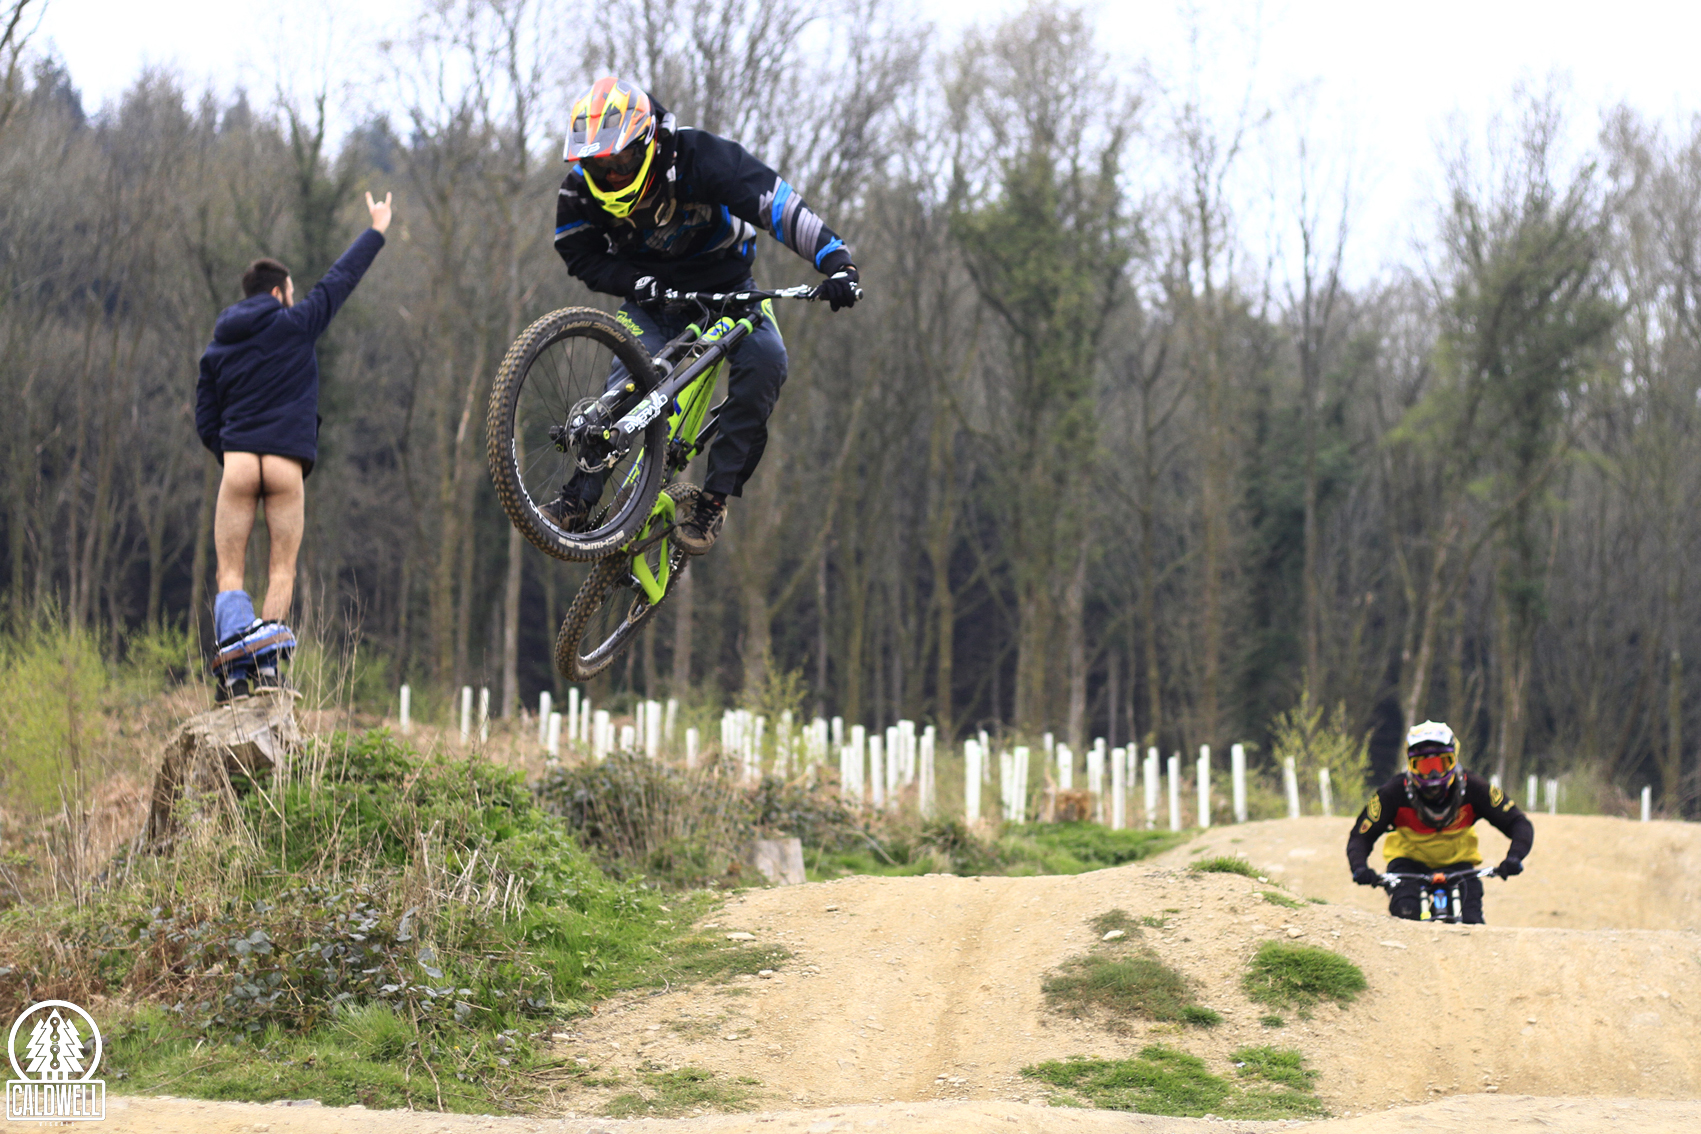 Drag Racing Helmets >> Hitting the Forest of Dean with style - CaldwellVisuals - Mountain Biking Pictures - Vital MTB